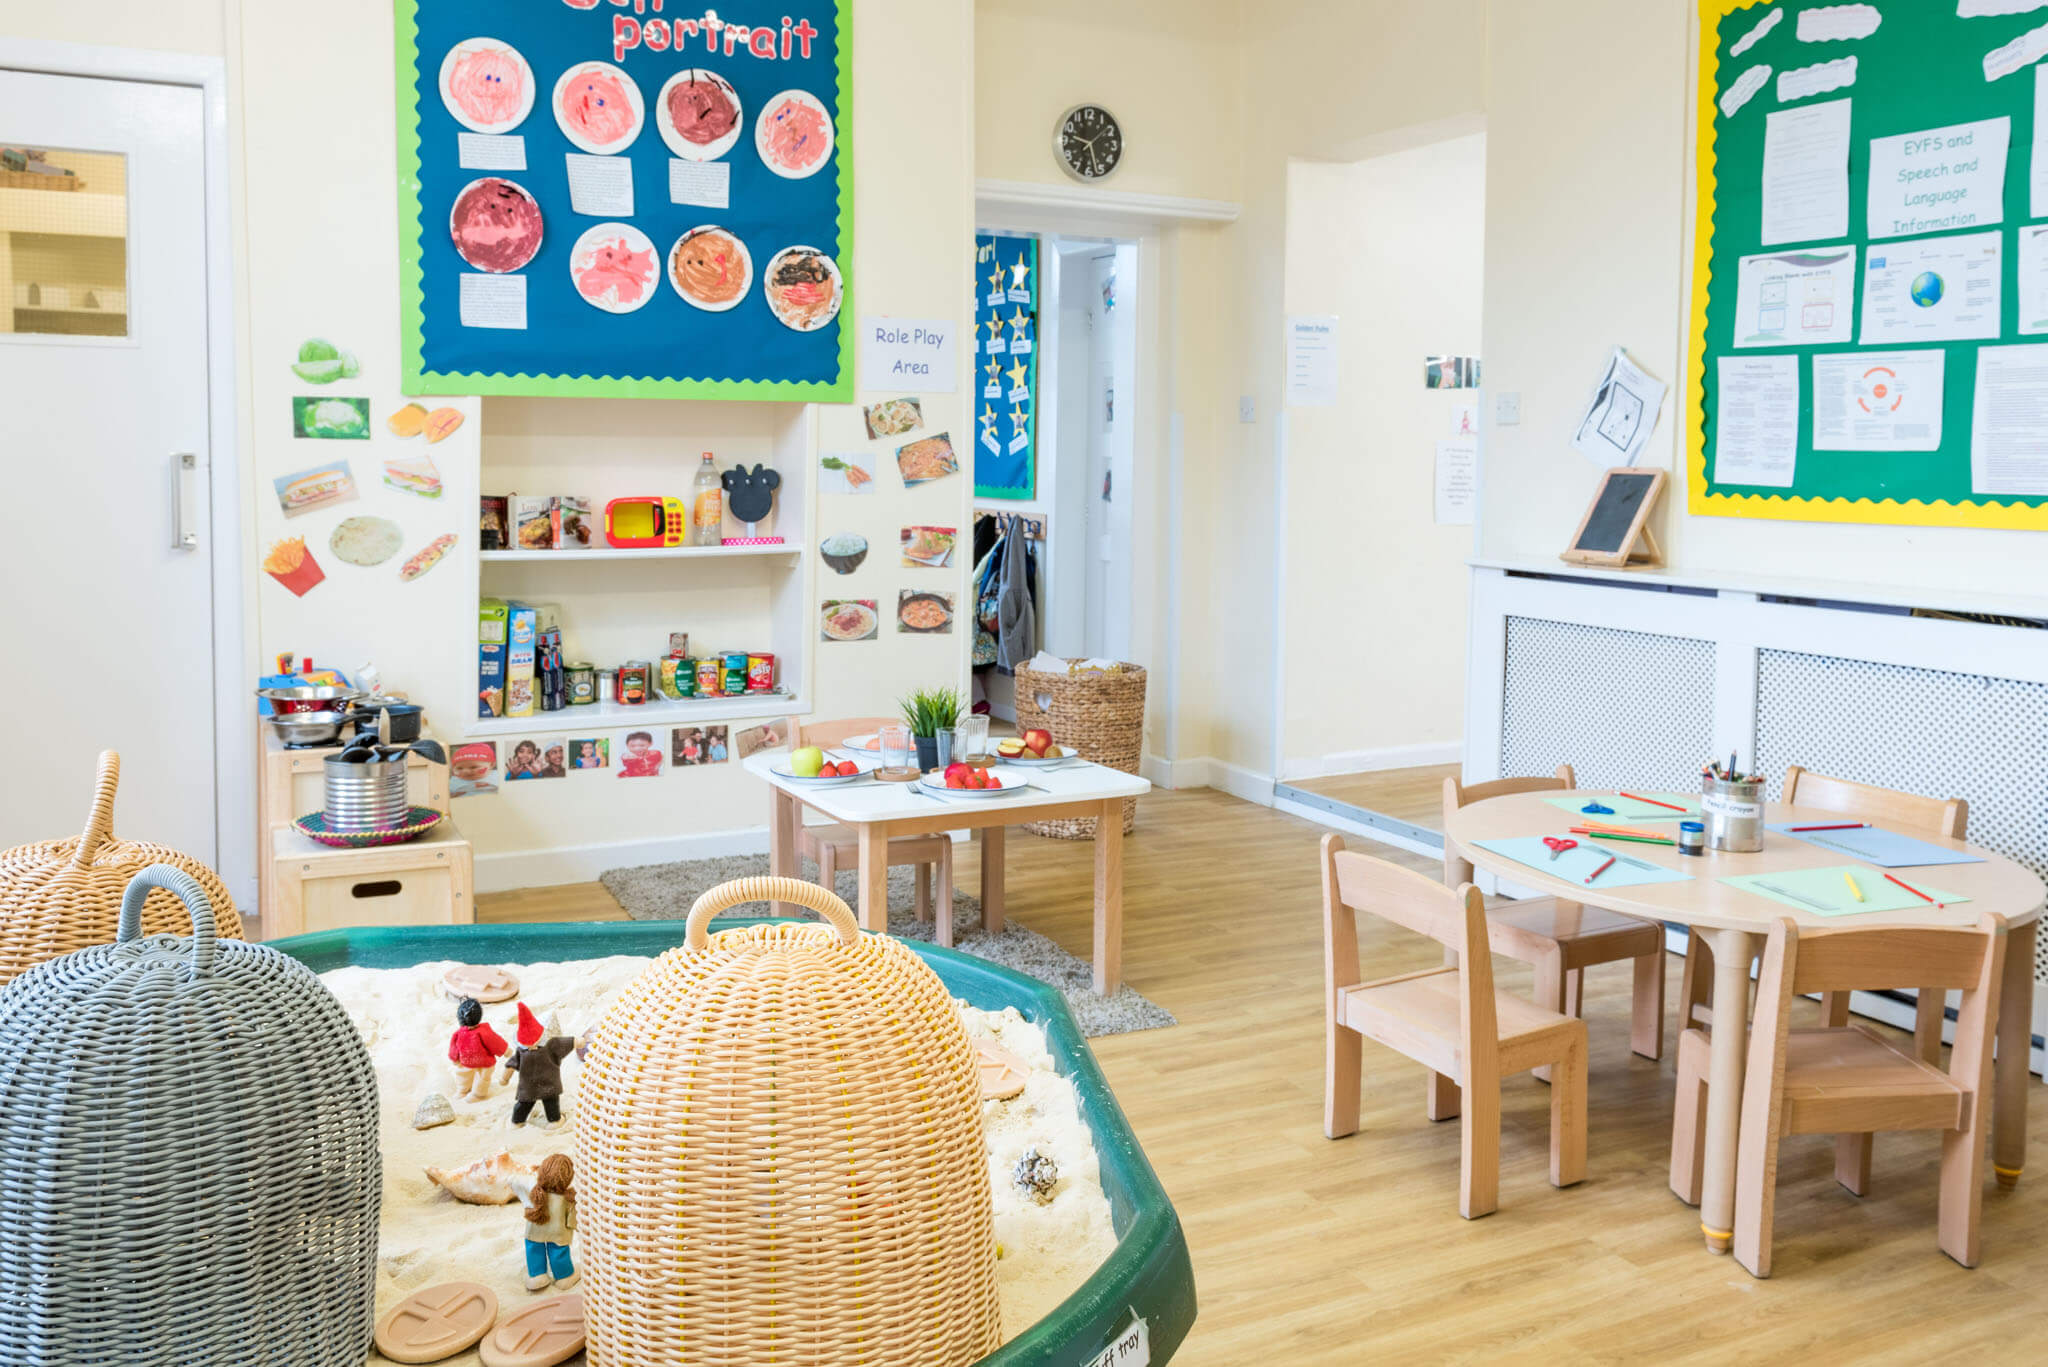 Nursery in Bury Lancashire Playrooms